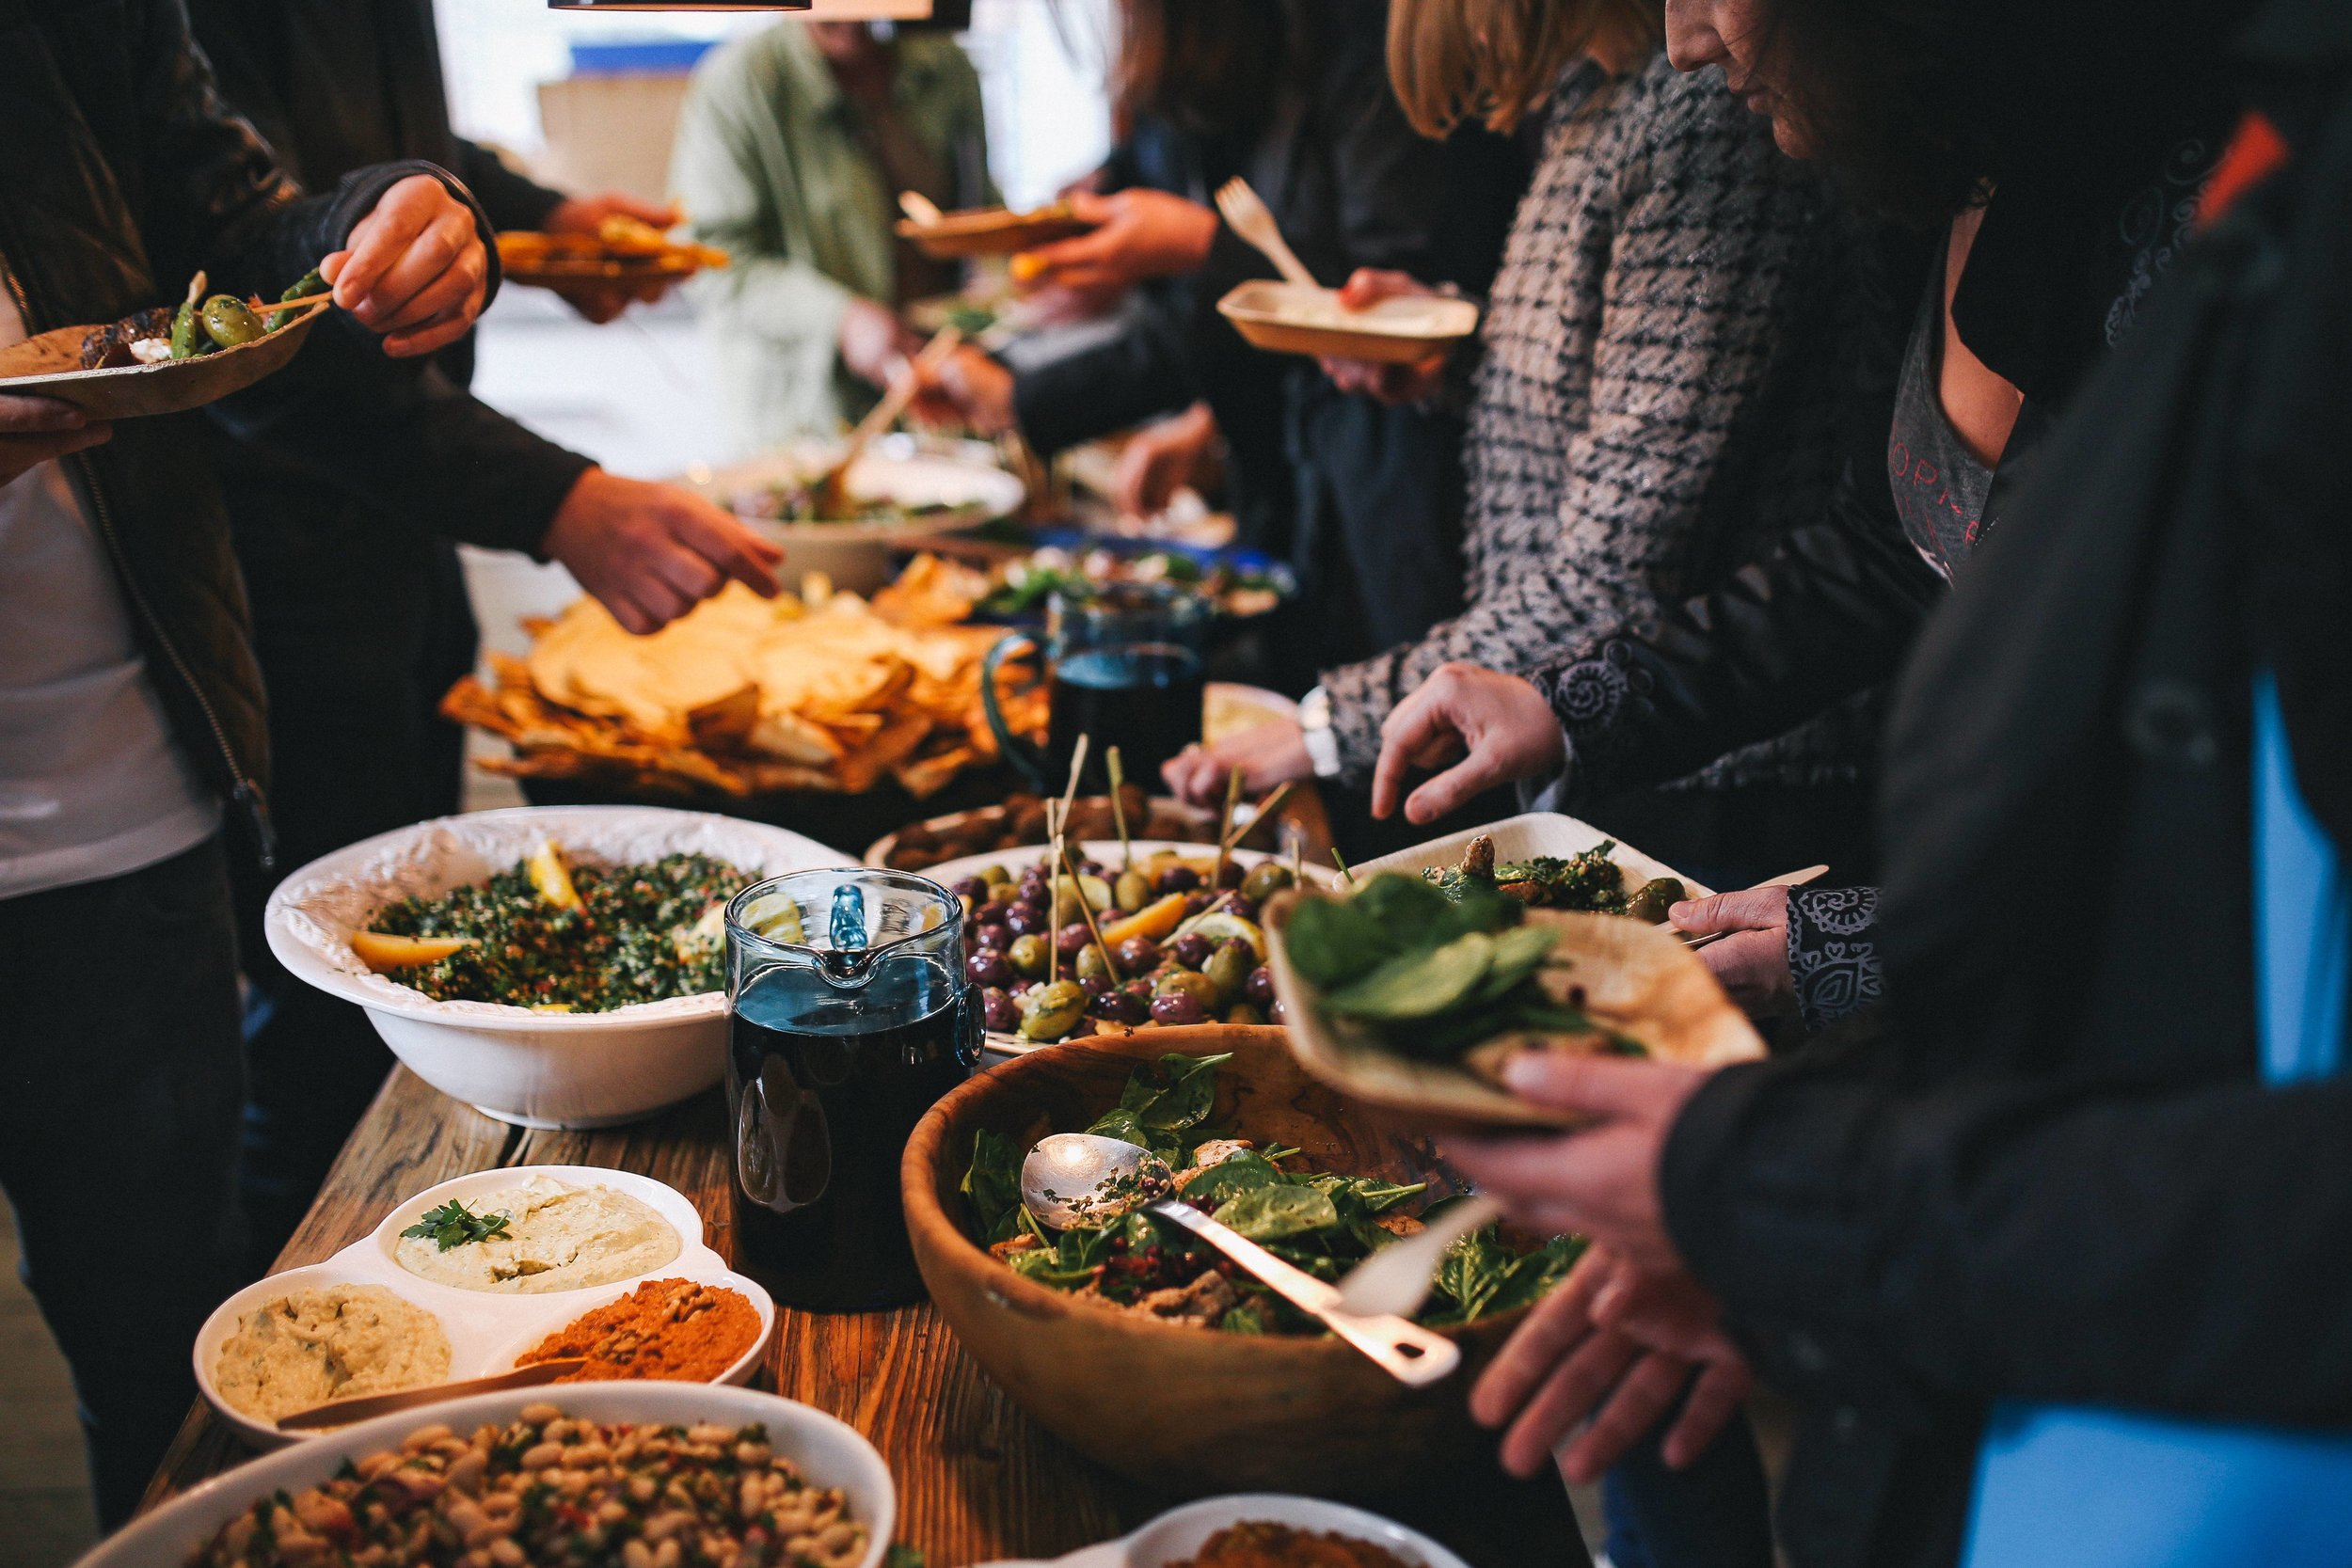 kaboompics_People by a banquet table full with food.jpg